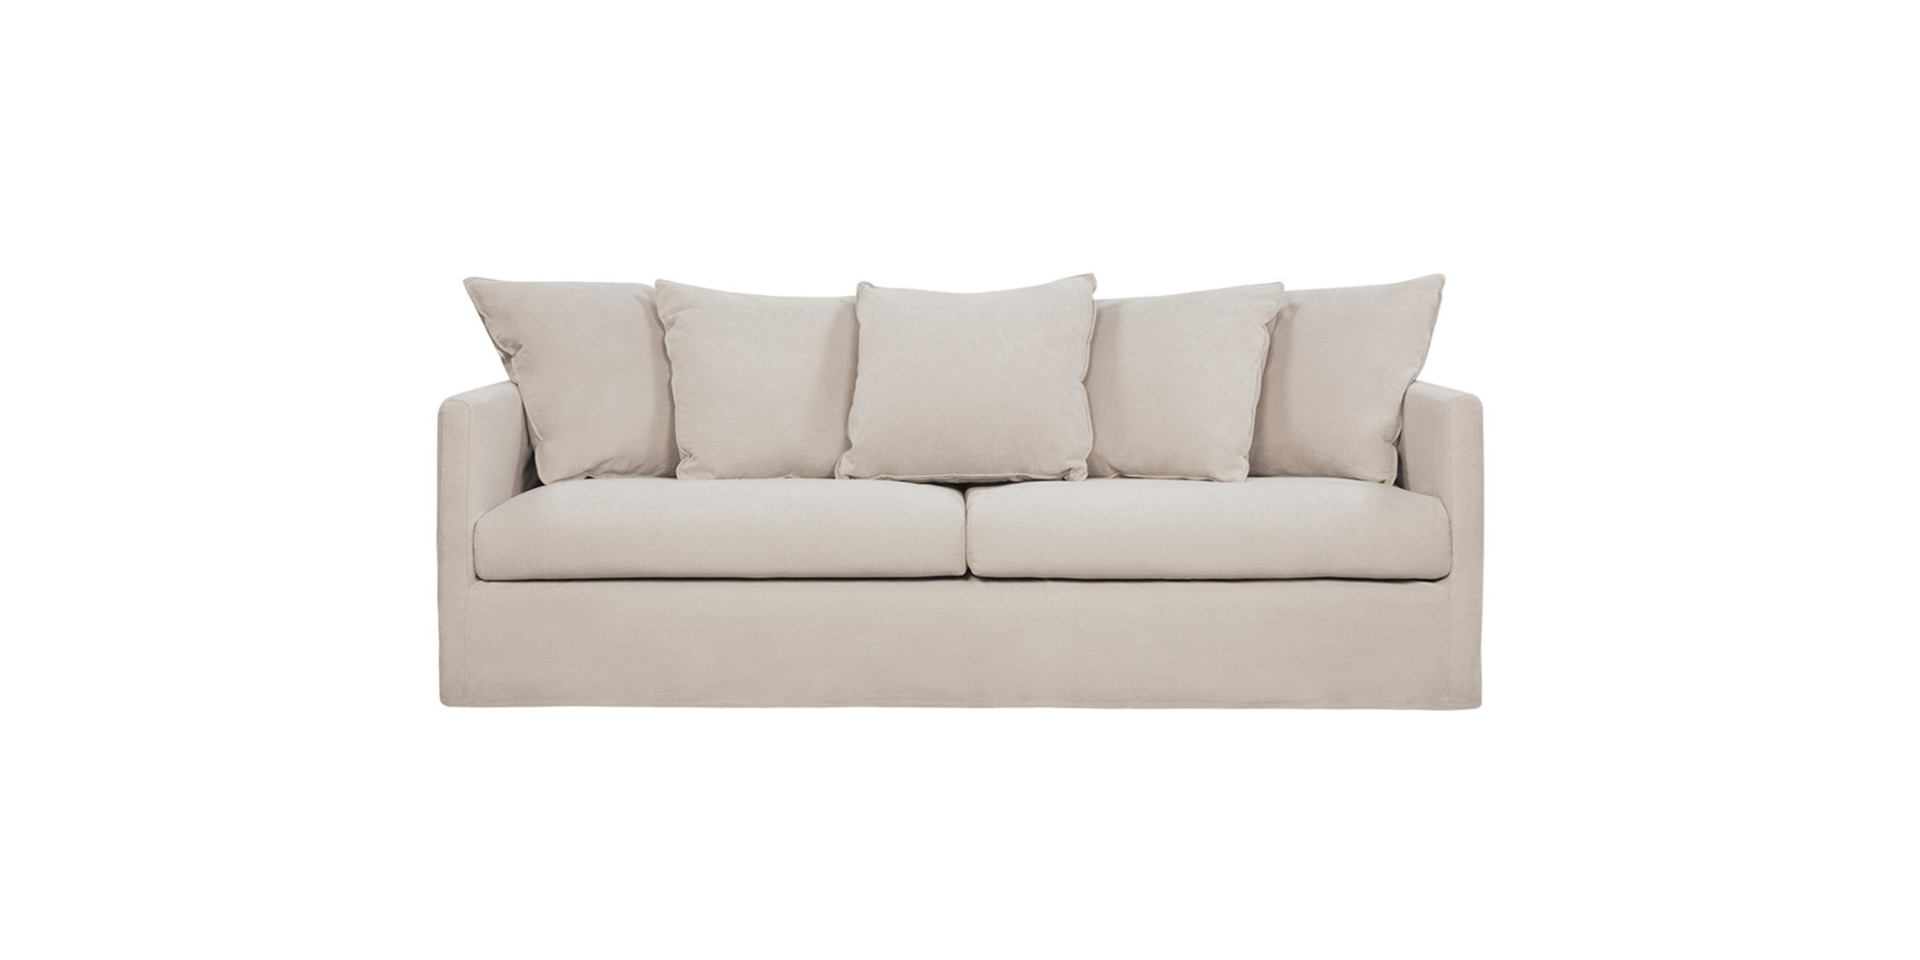 SALLY_3seater_small_cushions_caleido3790_light_beige_1_0